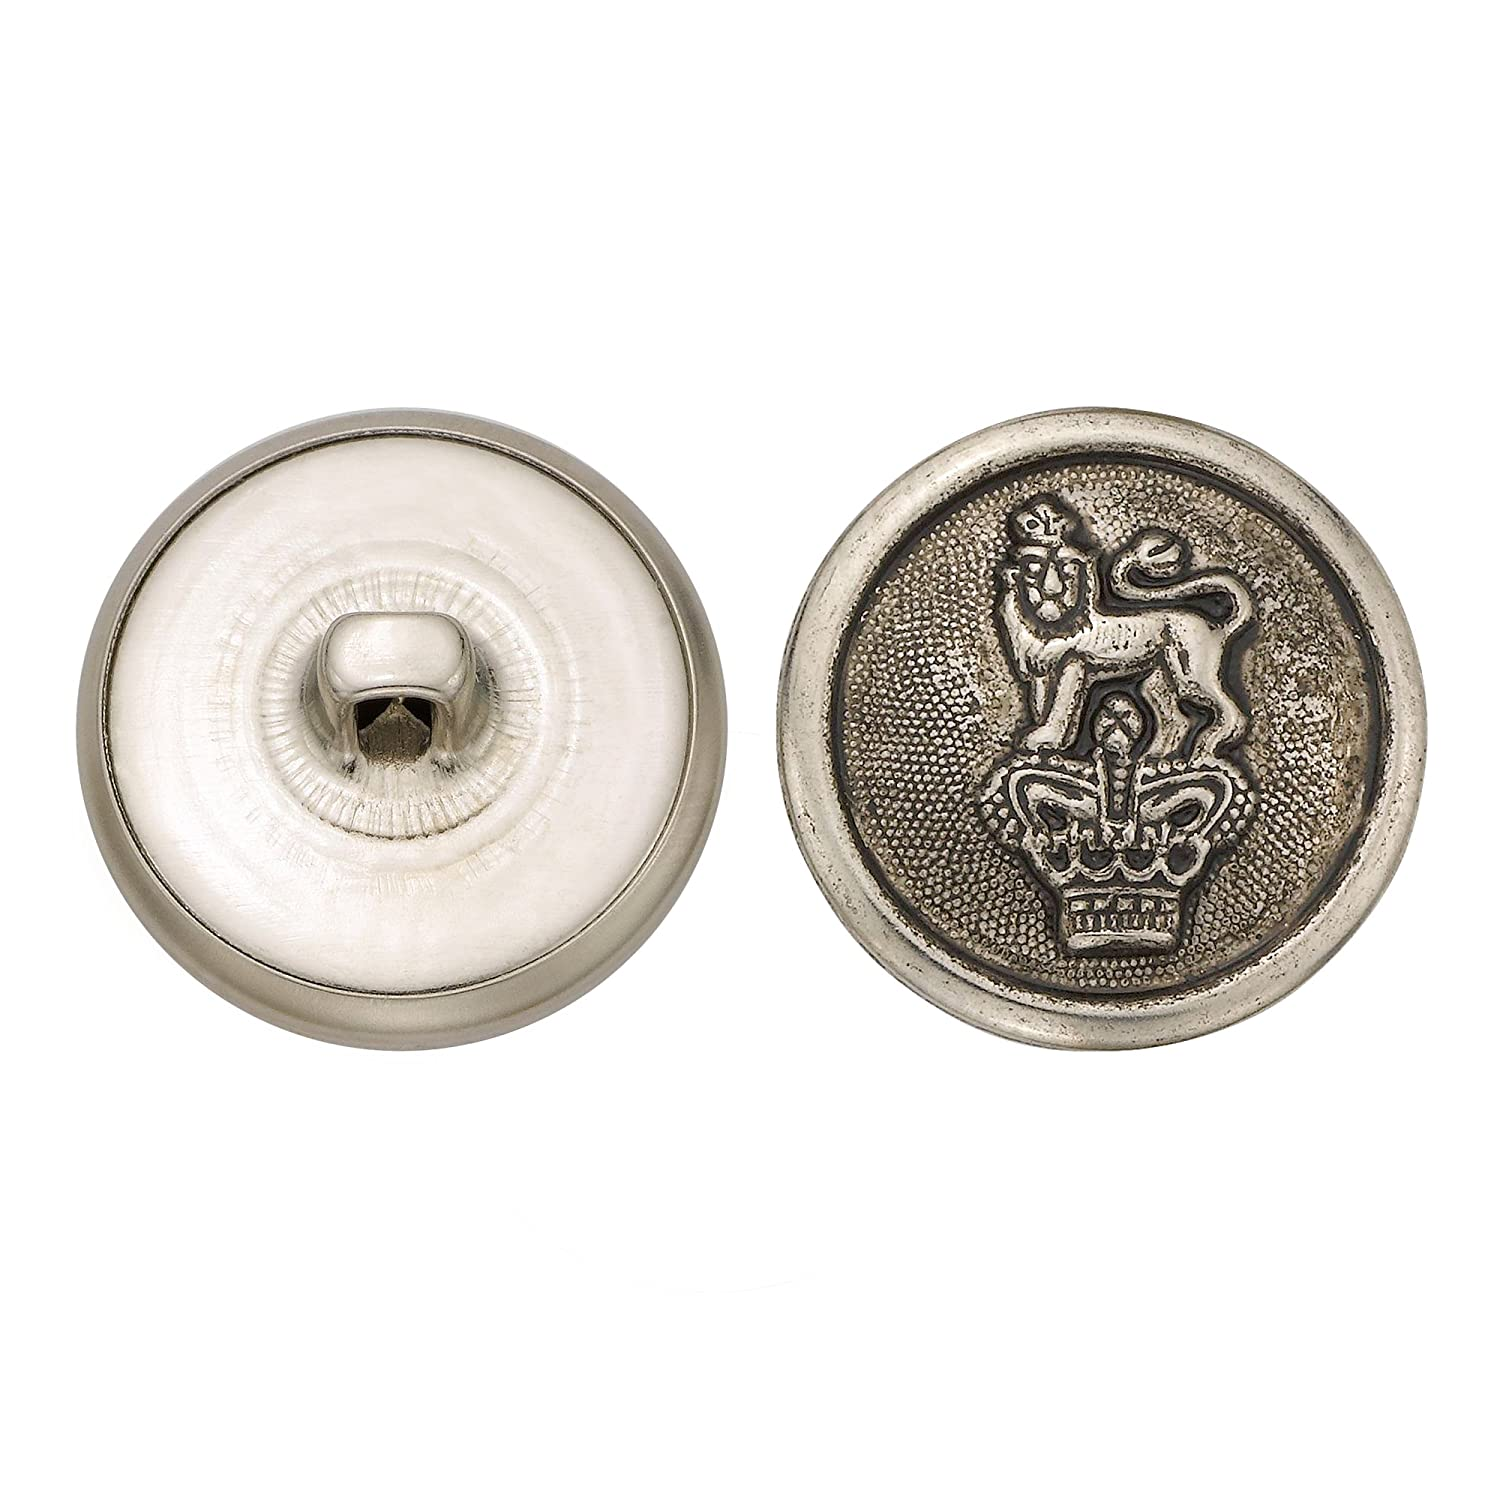 C/&C Metal Products Corp 5001 Flat Metal Button Size 40 Colonial Nickel Finish 36-Piece